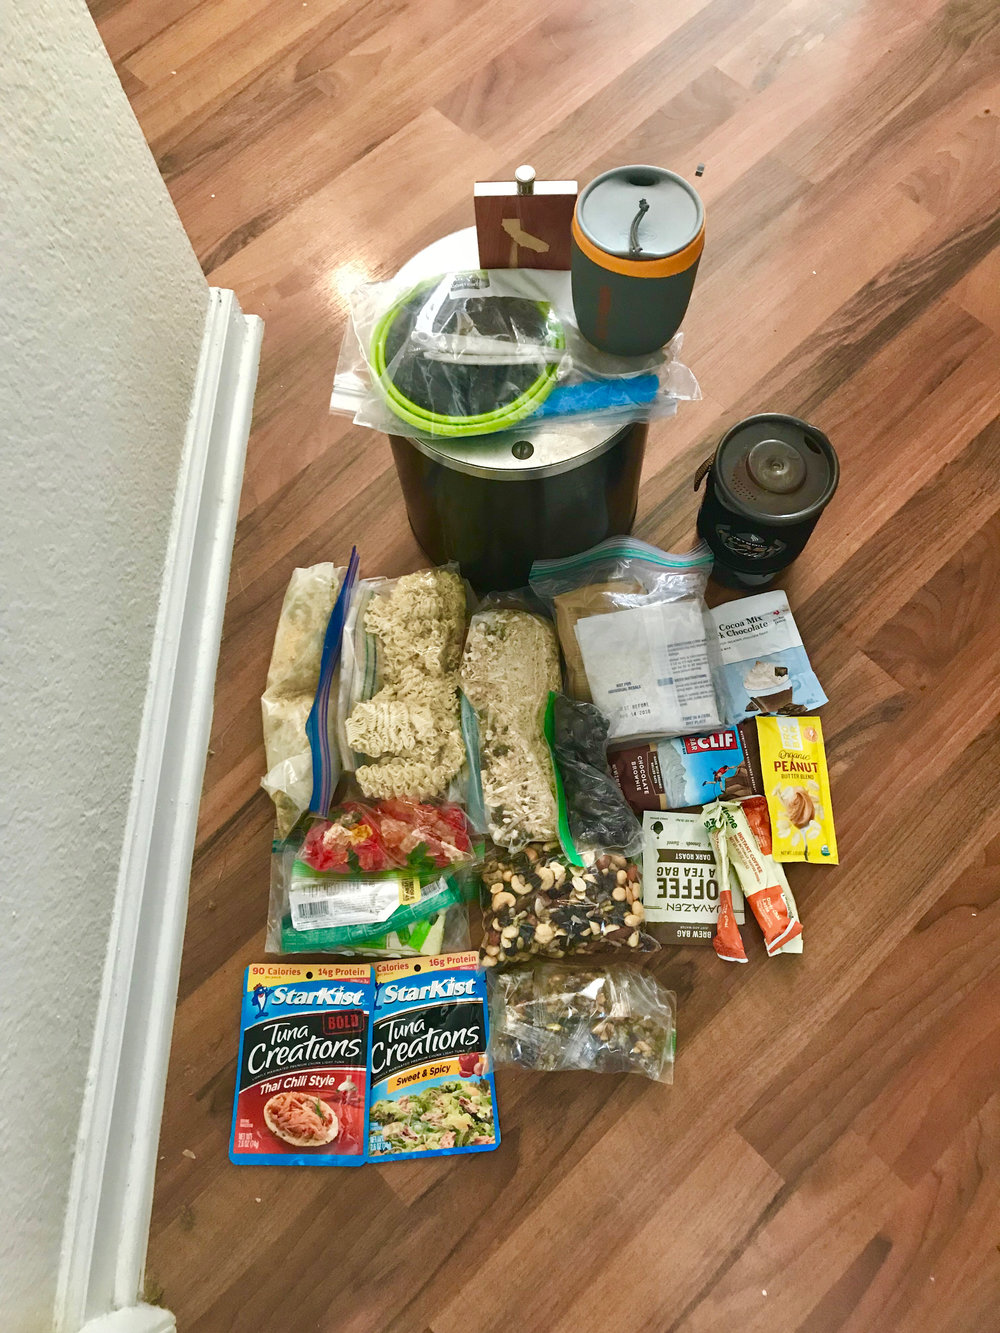 Food , stove, bear canister, cutlery and mug. Make sure you have enough calories to keep you warm on the trails.